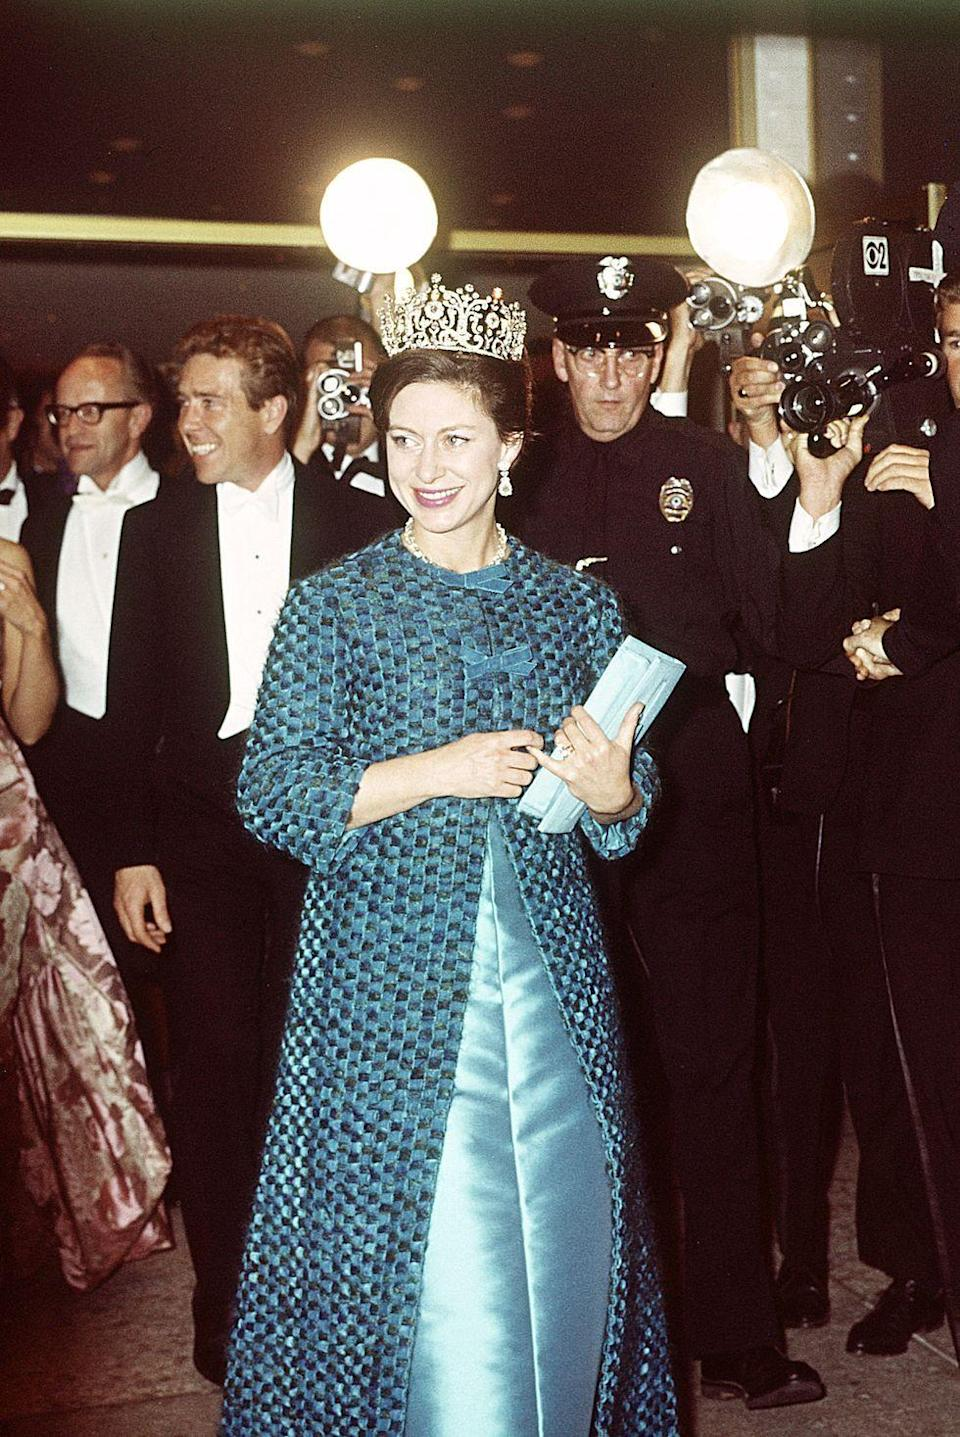 <p>In 1965, Princess Margaret wore a blue dress and coat with a stunning tiara during a visit to America. The Princess attended an event at the Hollywood Palladium in Los Angeles with Lord Snowdon.</p>